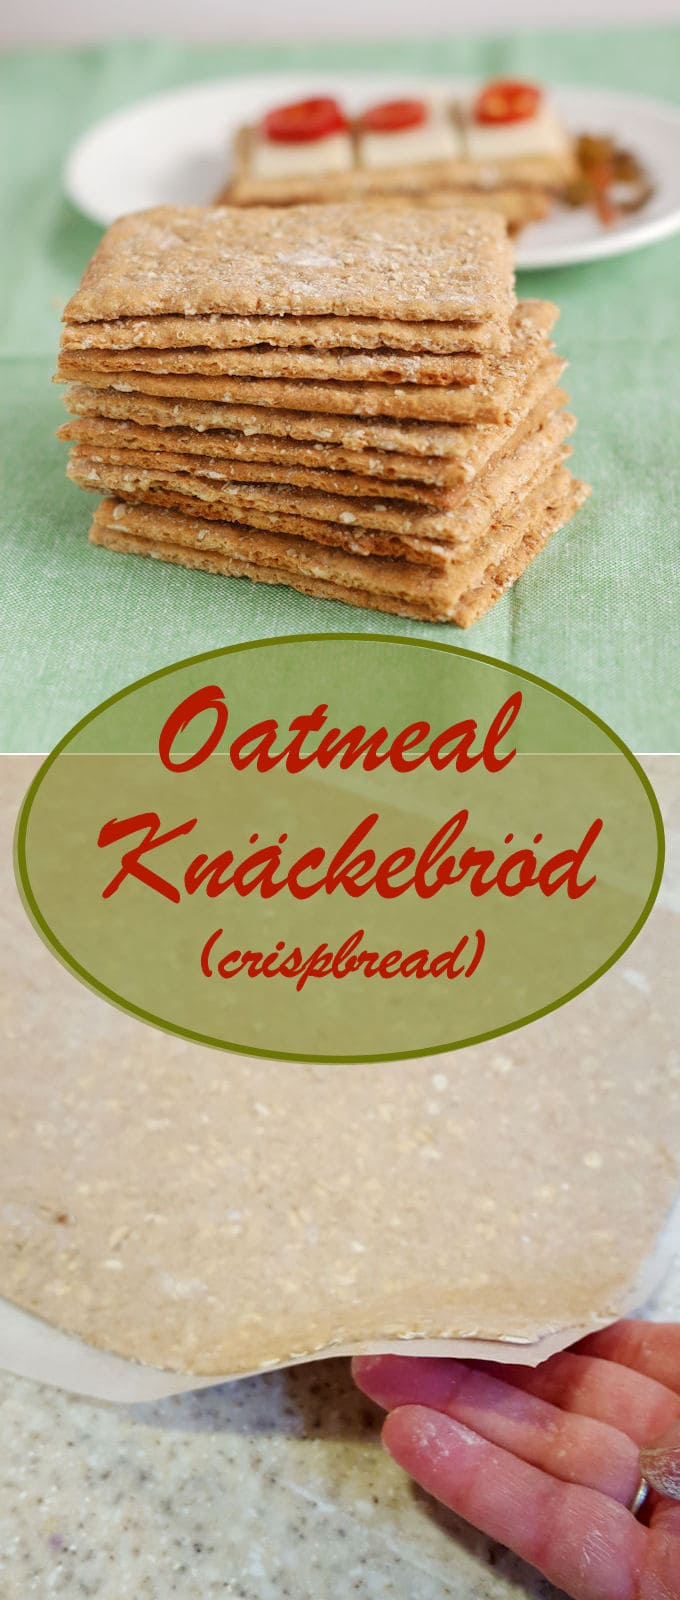 Homemade Oatmeal Knäckebröd (Crispbread) is unbelievably delicious, nutritious and surprisingly easy to make. #Breadbakers